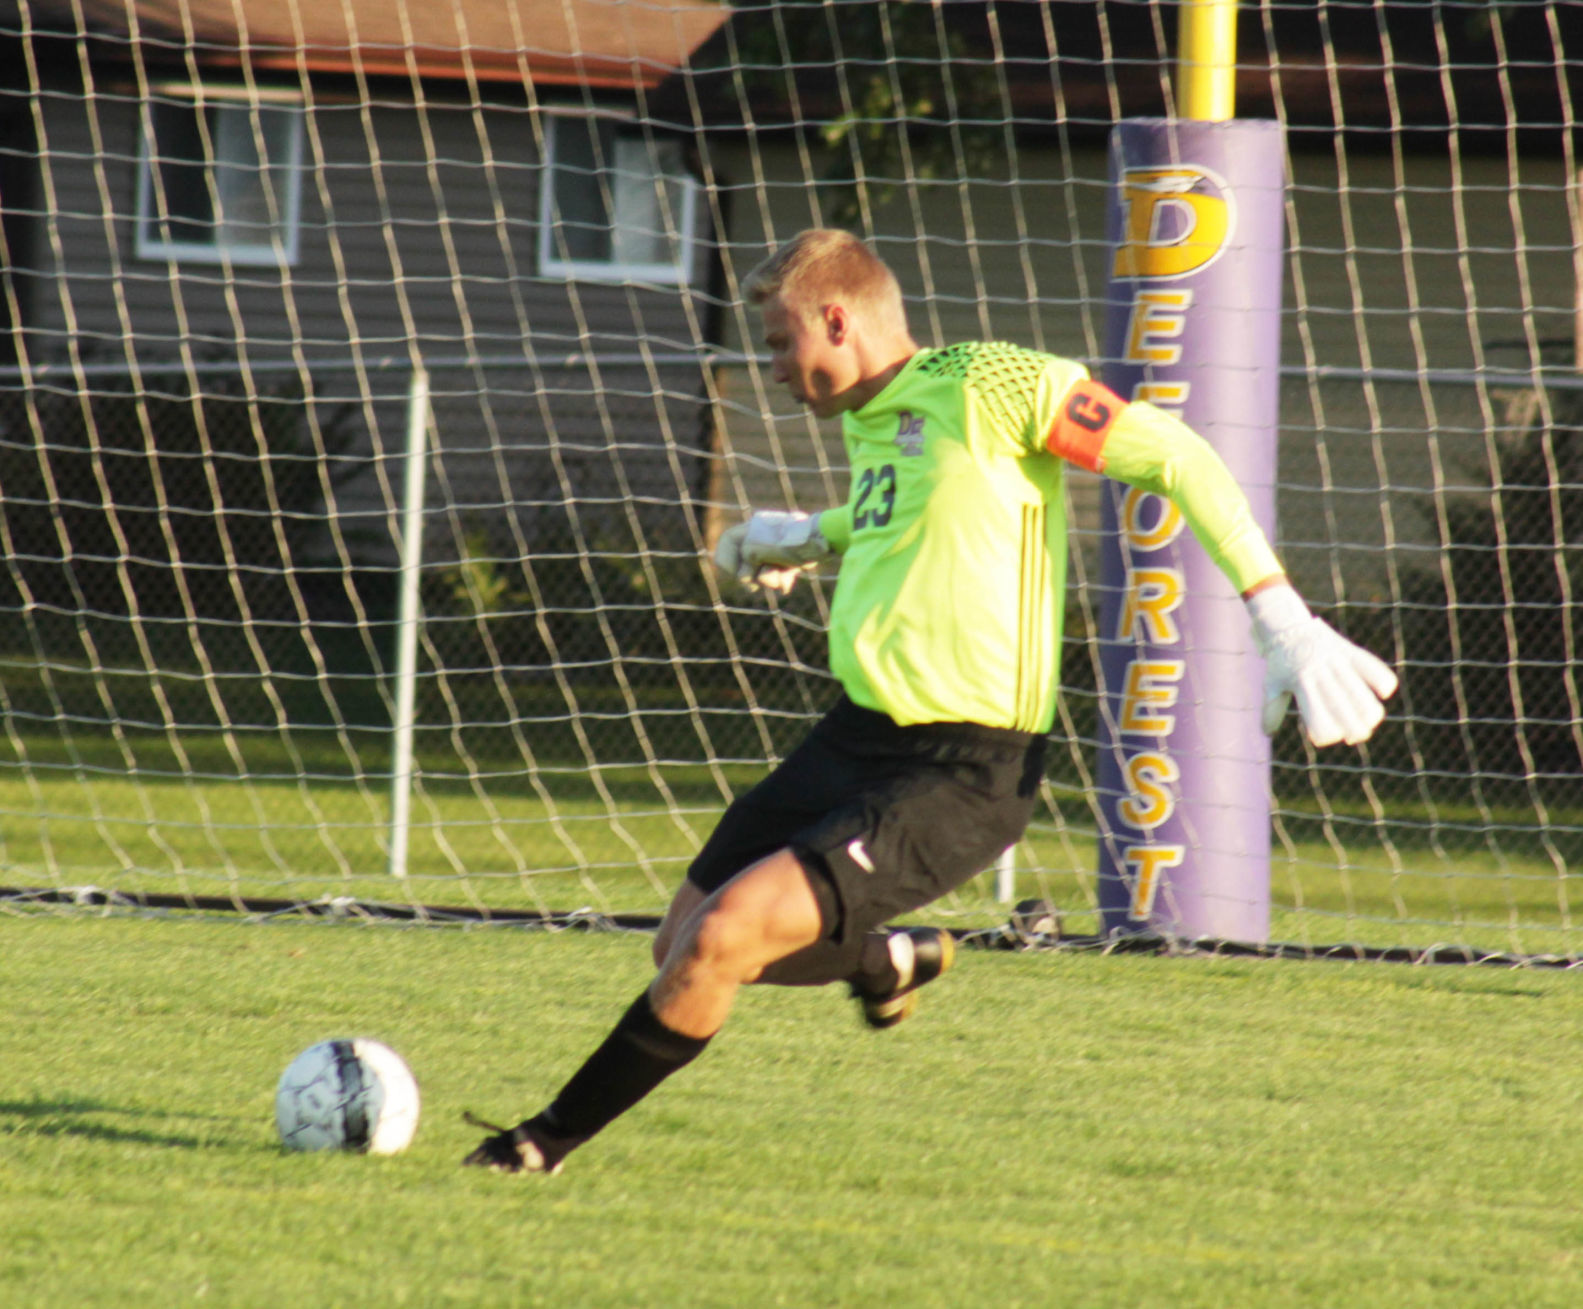 Norski kickers contend for title in 2018 | DeForest Times